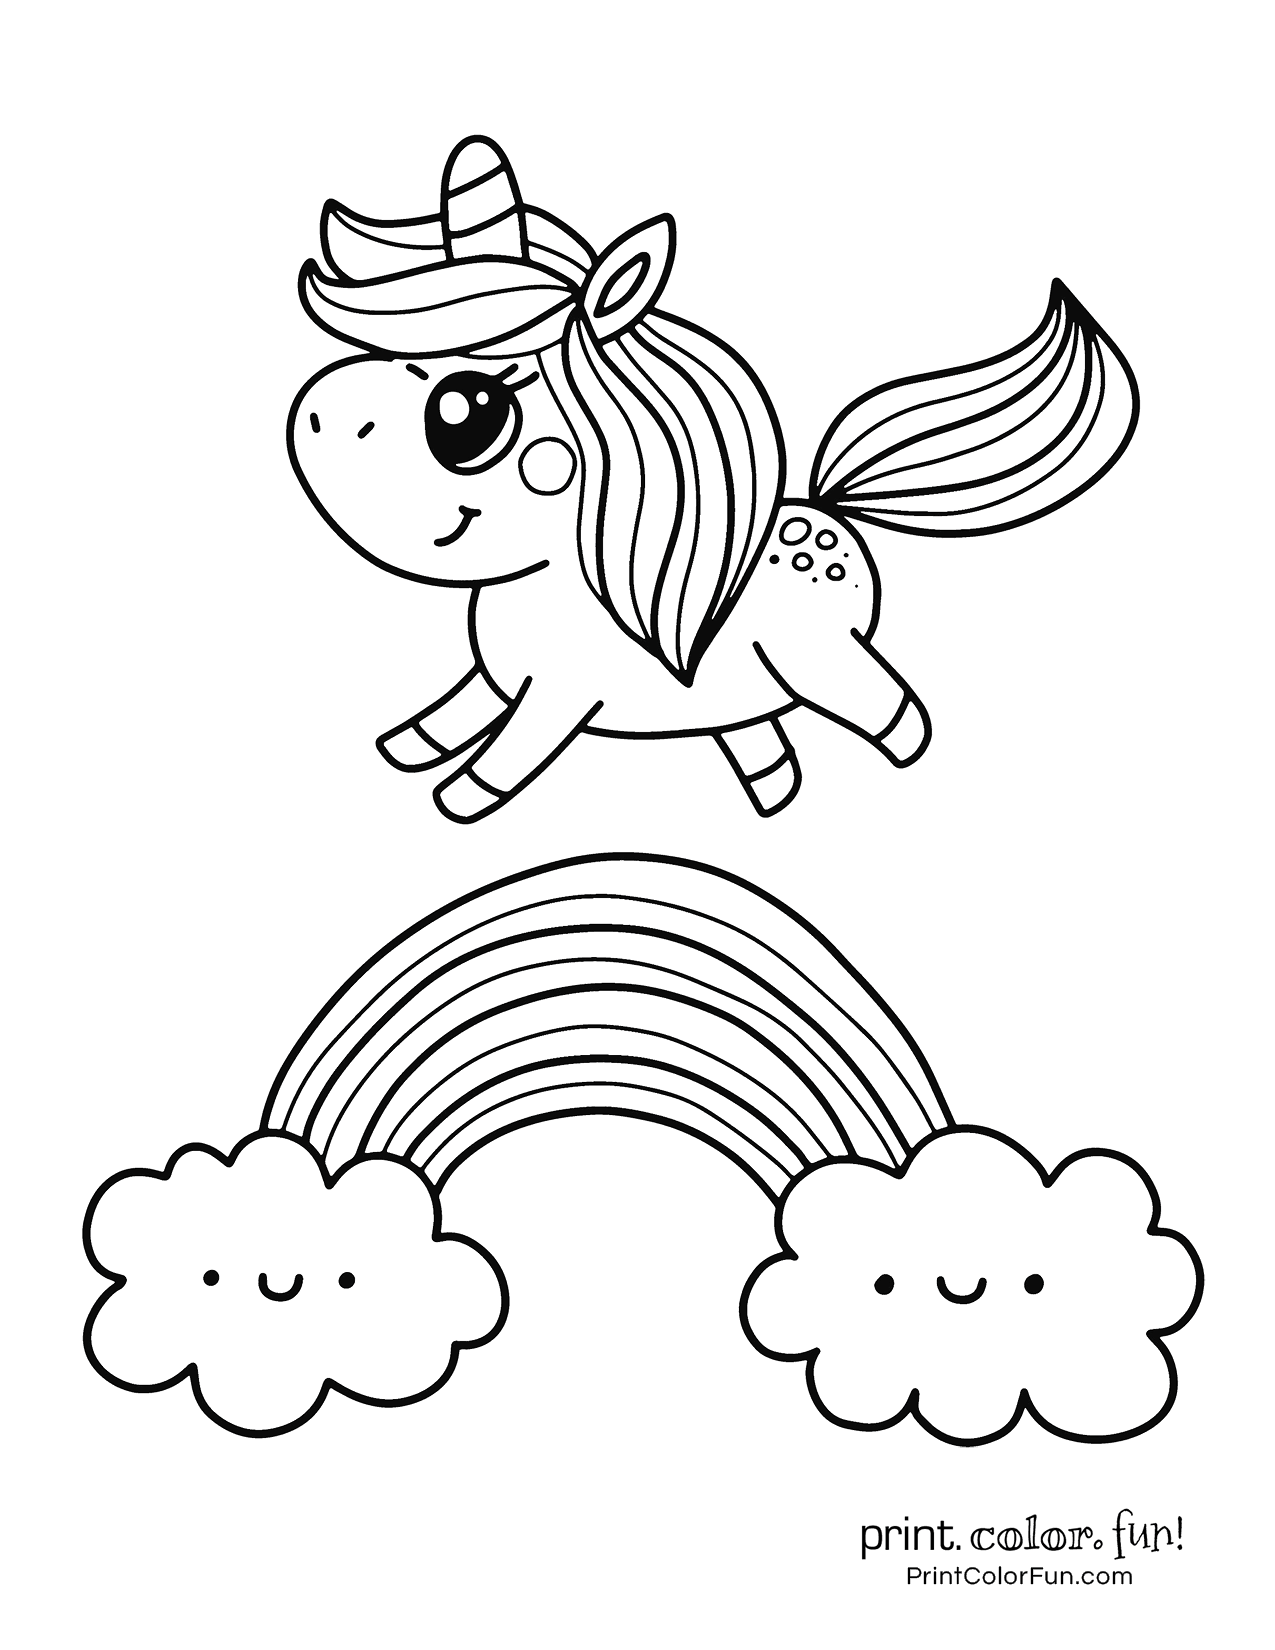 Cute Unicorn On A Rainbow Unicorn Coloring Pages Mermaid Coloring Pages Unicorn Pictures To Color